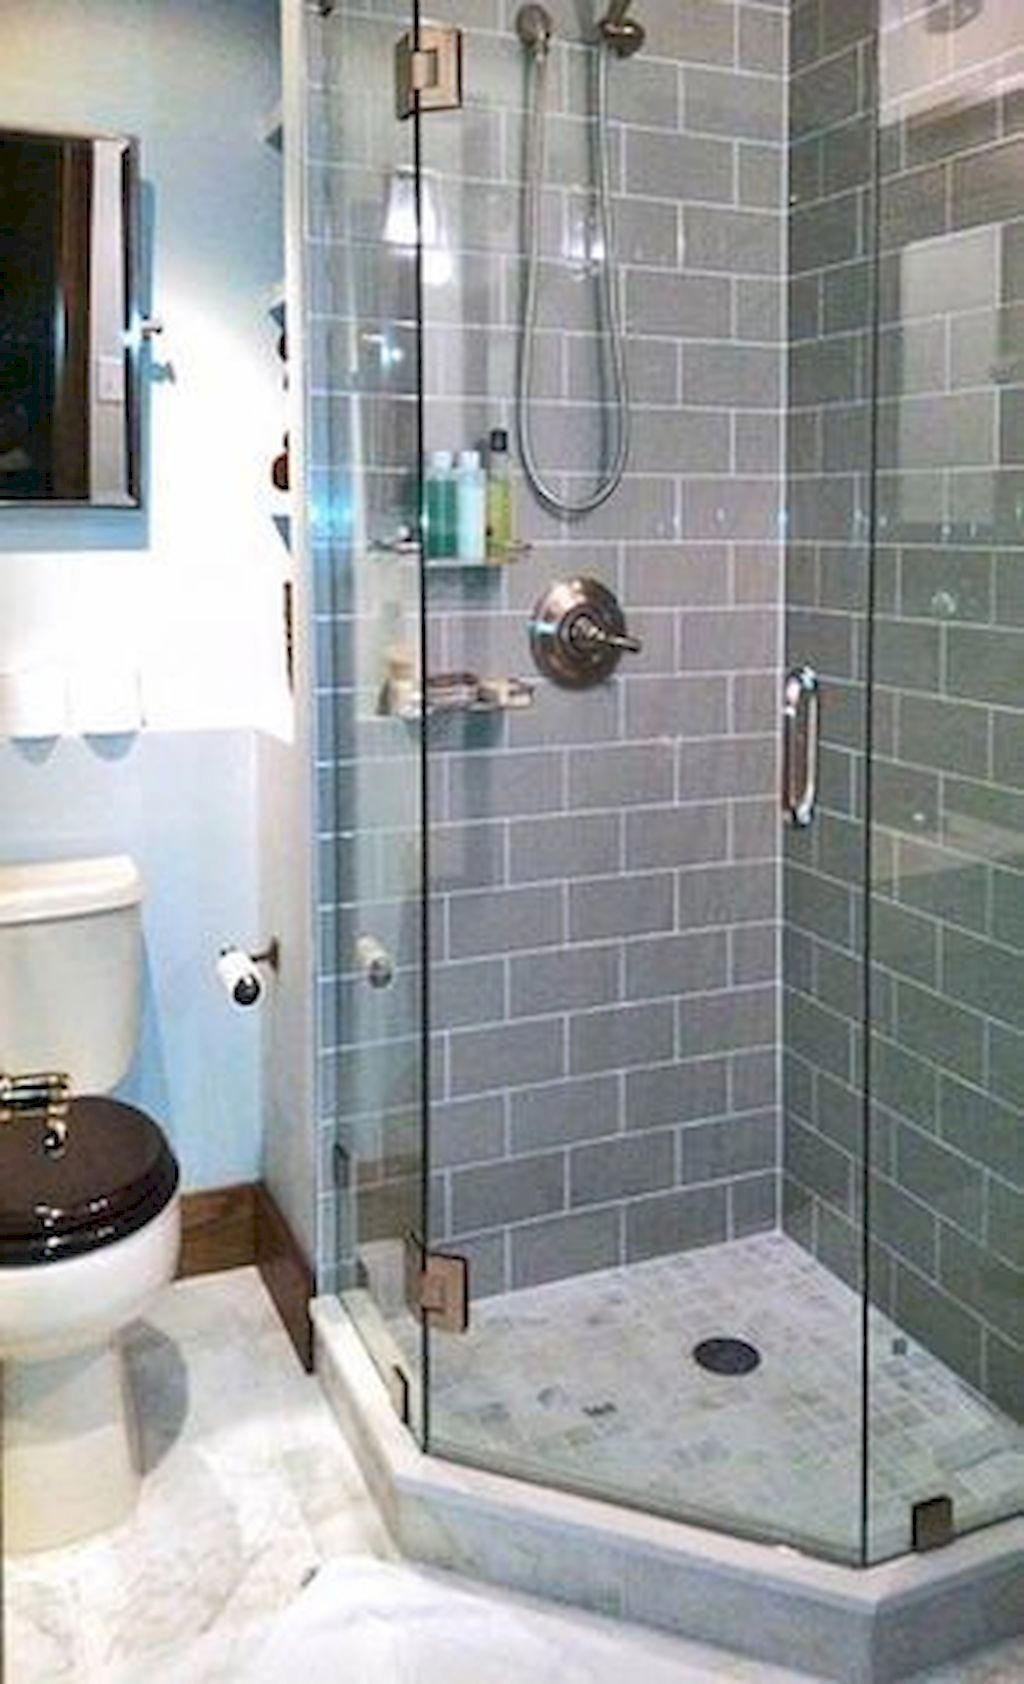 9 Delicious Cool Tips Plastic Stand Up Shower Remodel Small Shower Remodeling With In 2020 Bathroom Remodel Small Shower Bathroom Remodel Shower Small Shower Remodel